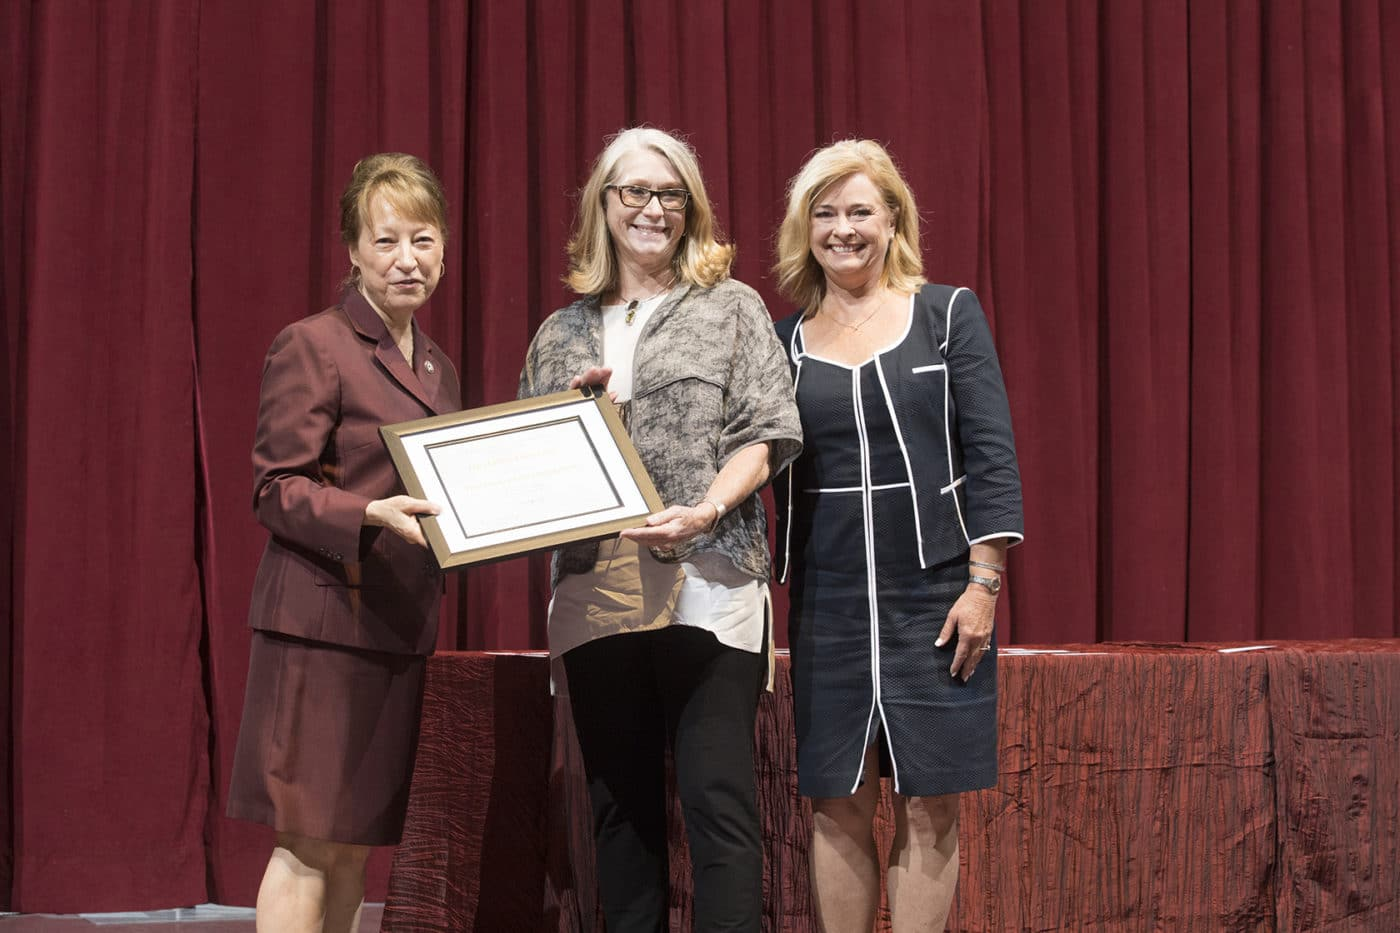 Lynn Denton receives the Teaching Award of Honor from President Trauth and Alumni Association President Cindy Williams